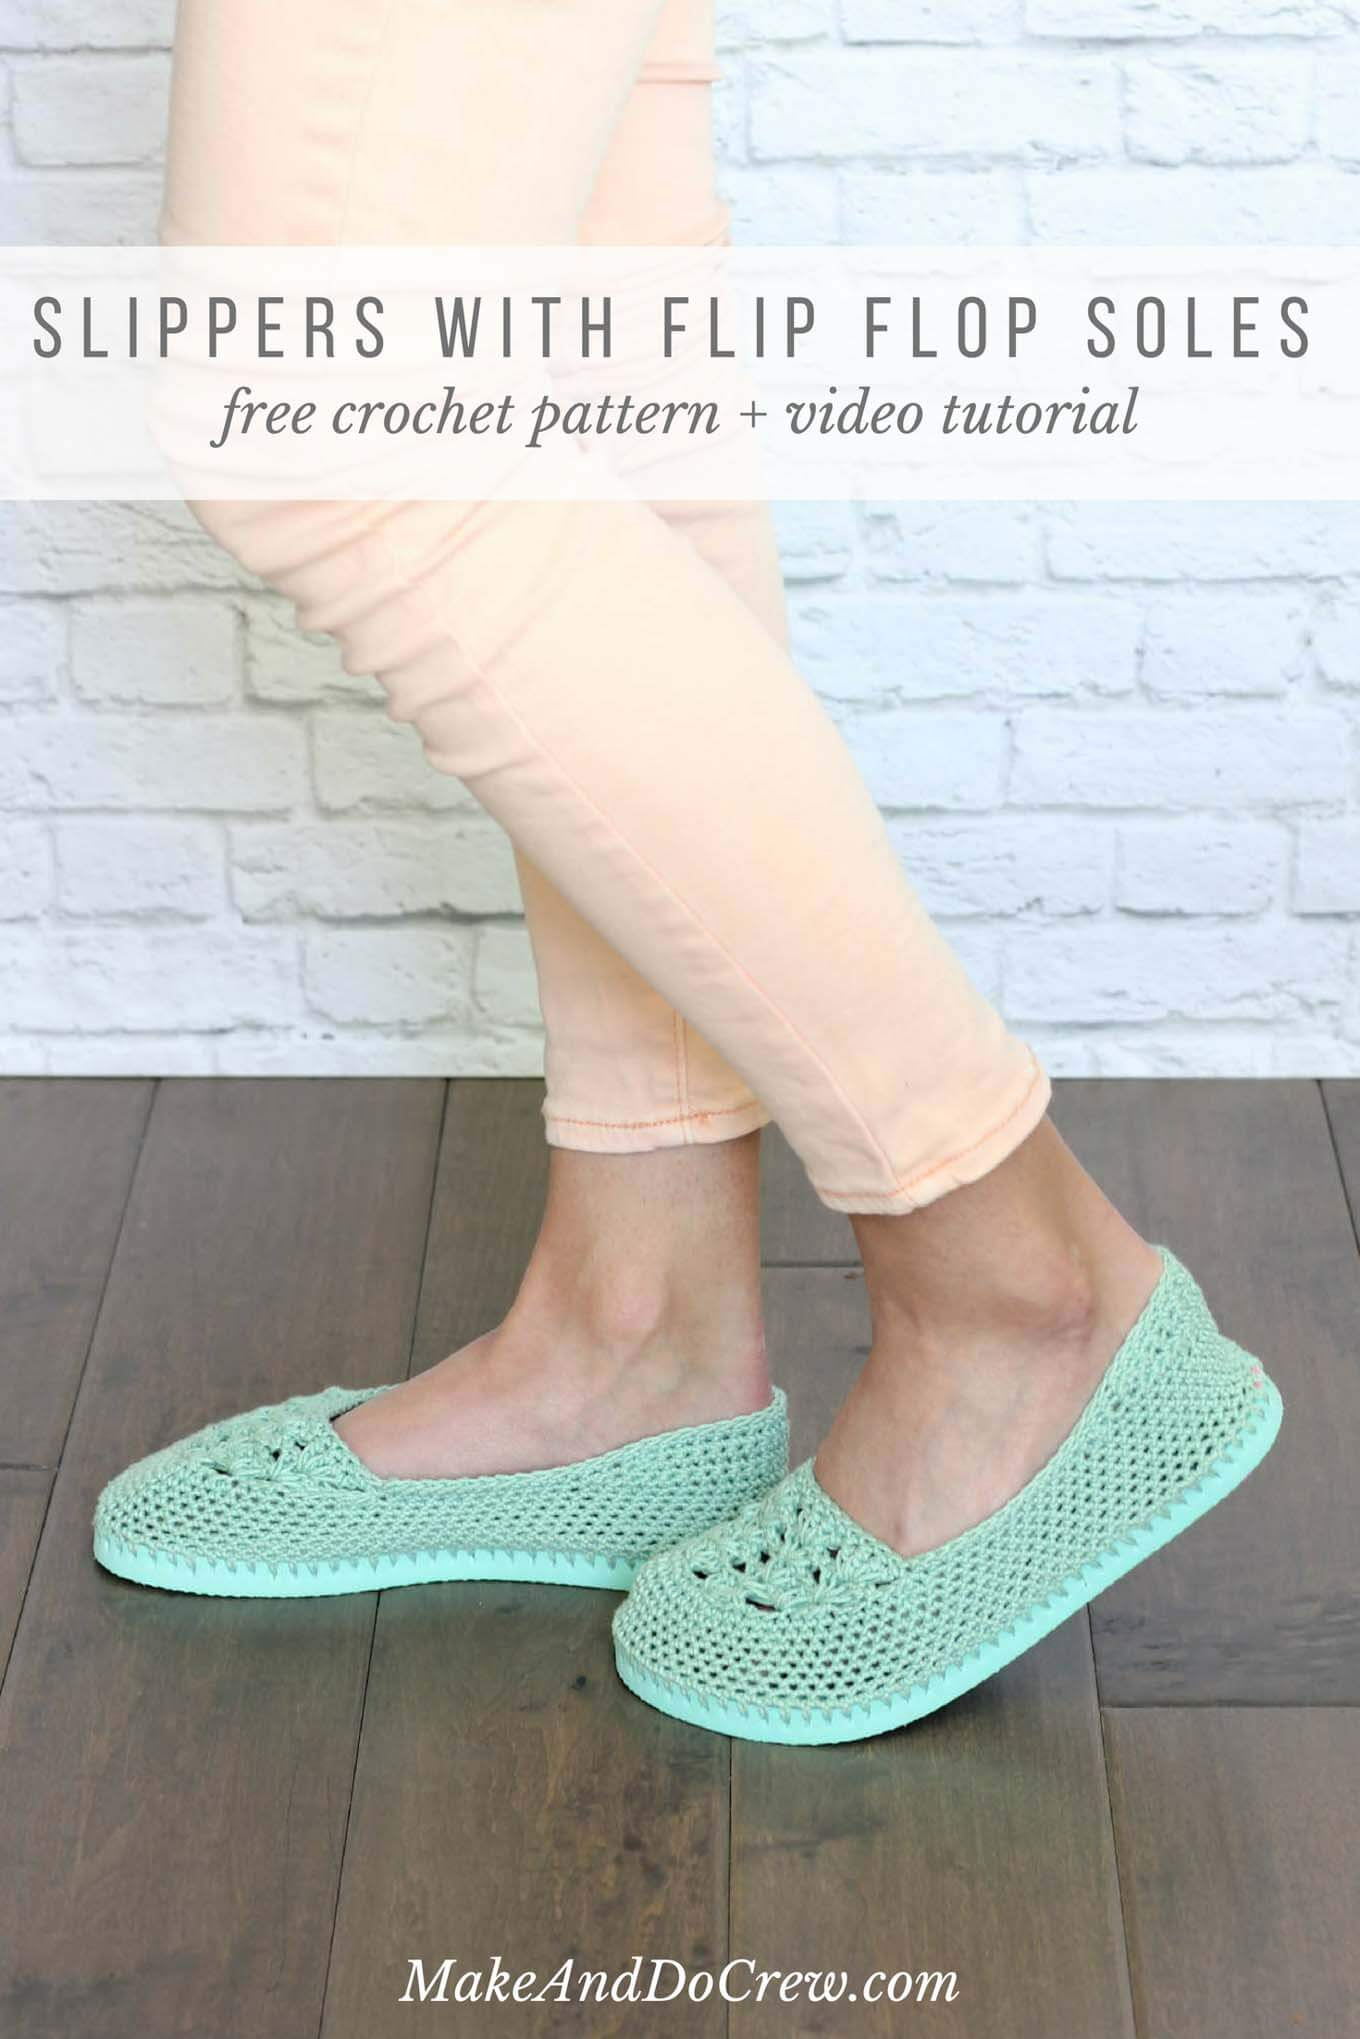 Crochet Slippers With Flip Flop Soles -- Free Pattern + Video Tutorial! - Free Printable Flip Flop Pattern